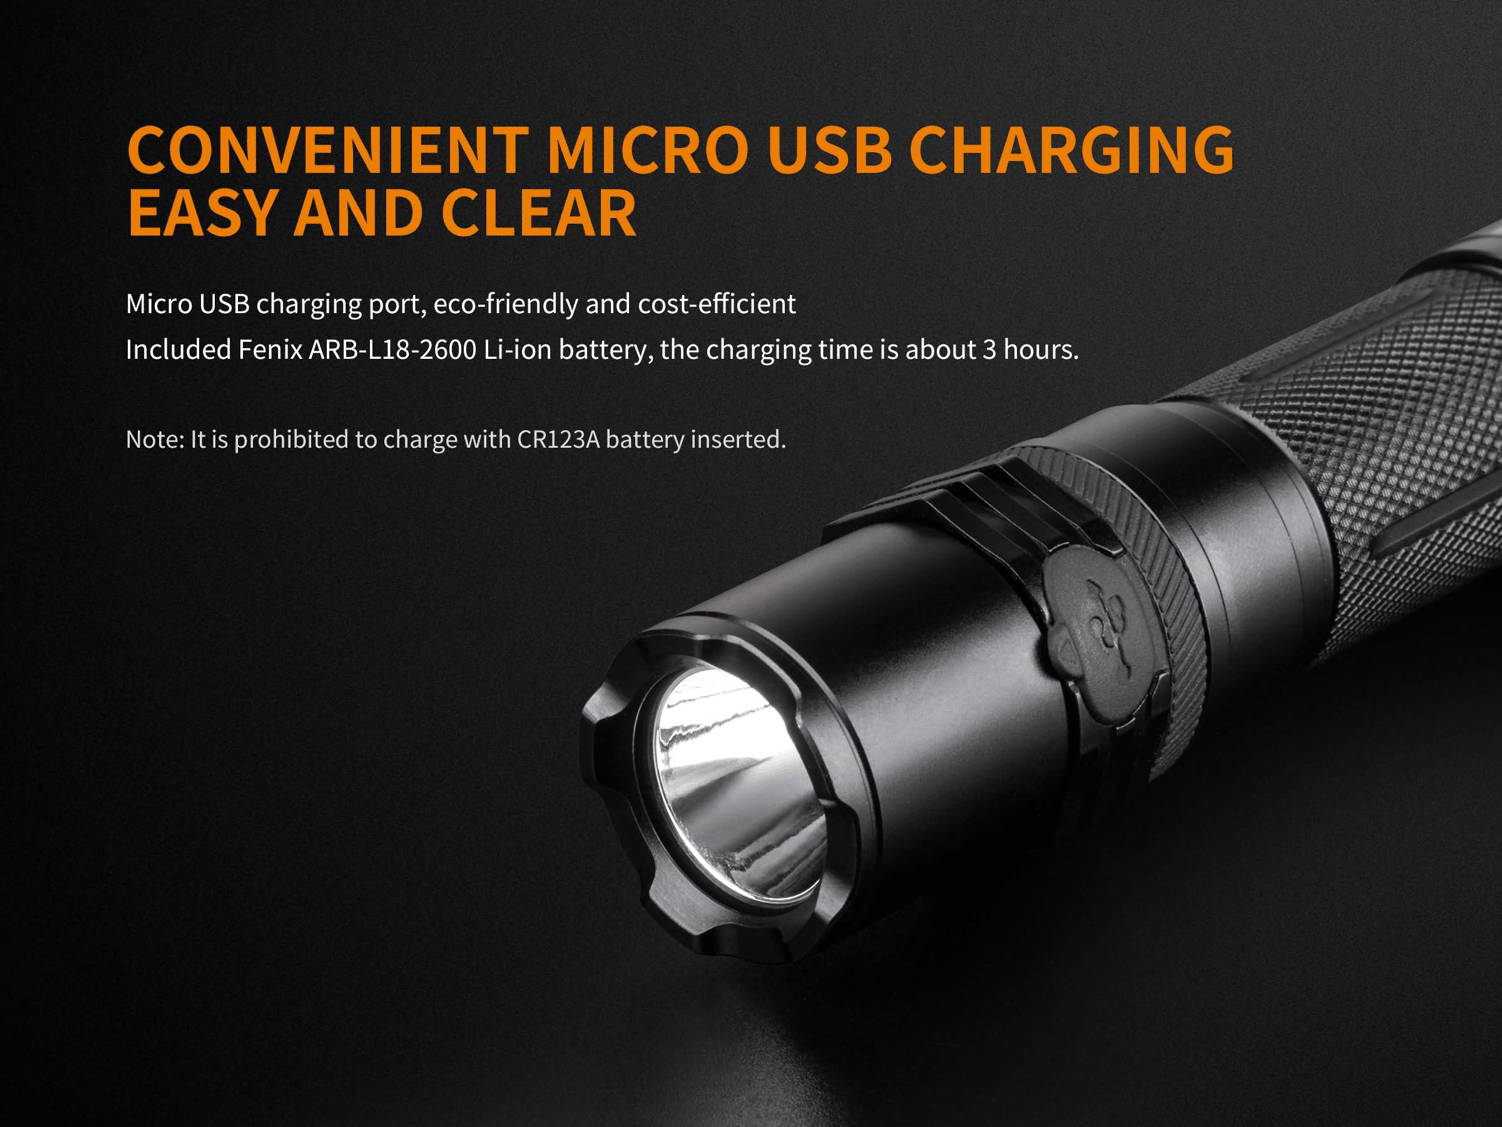 Fenix C6 LED Flashlight in India, 900 Lumens Powerful LED Torch, USB Rechargeable Handheld Light, Powered by Rechargeable Li-ion Battery, Compact, Everyday Carry Work Flashlight, economical Light in India